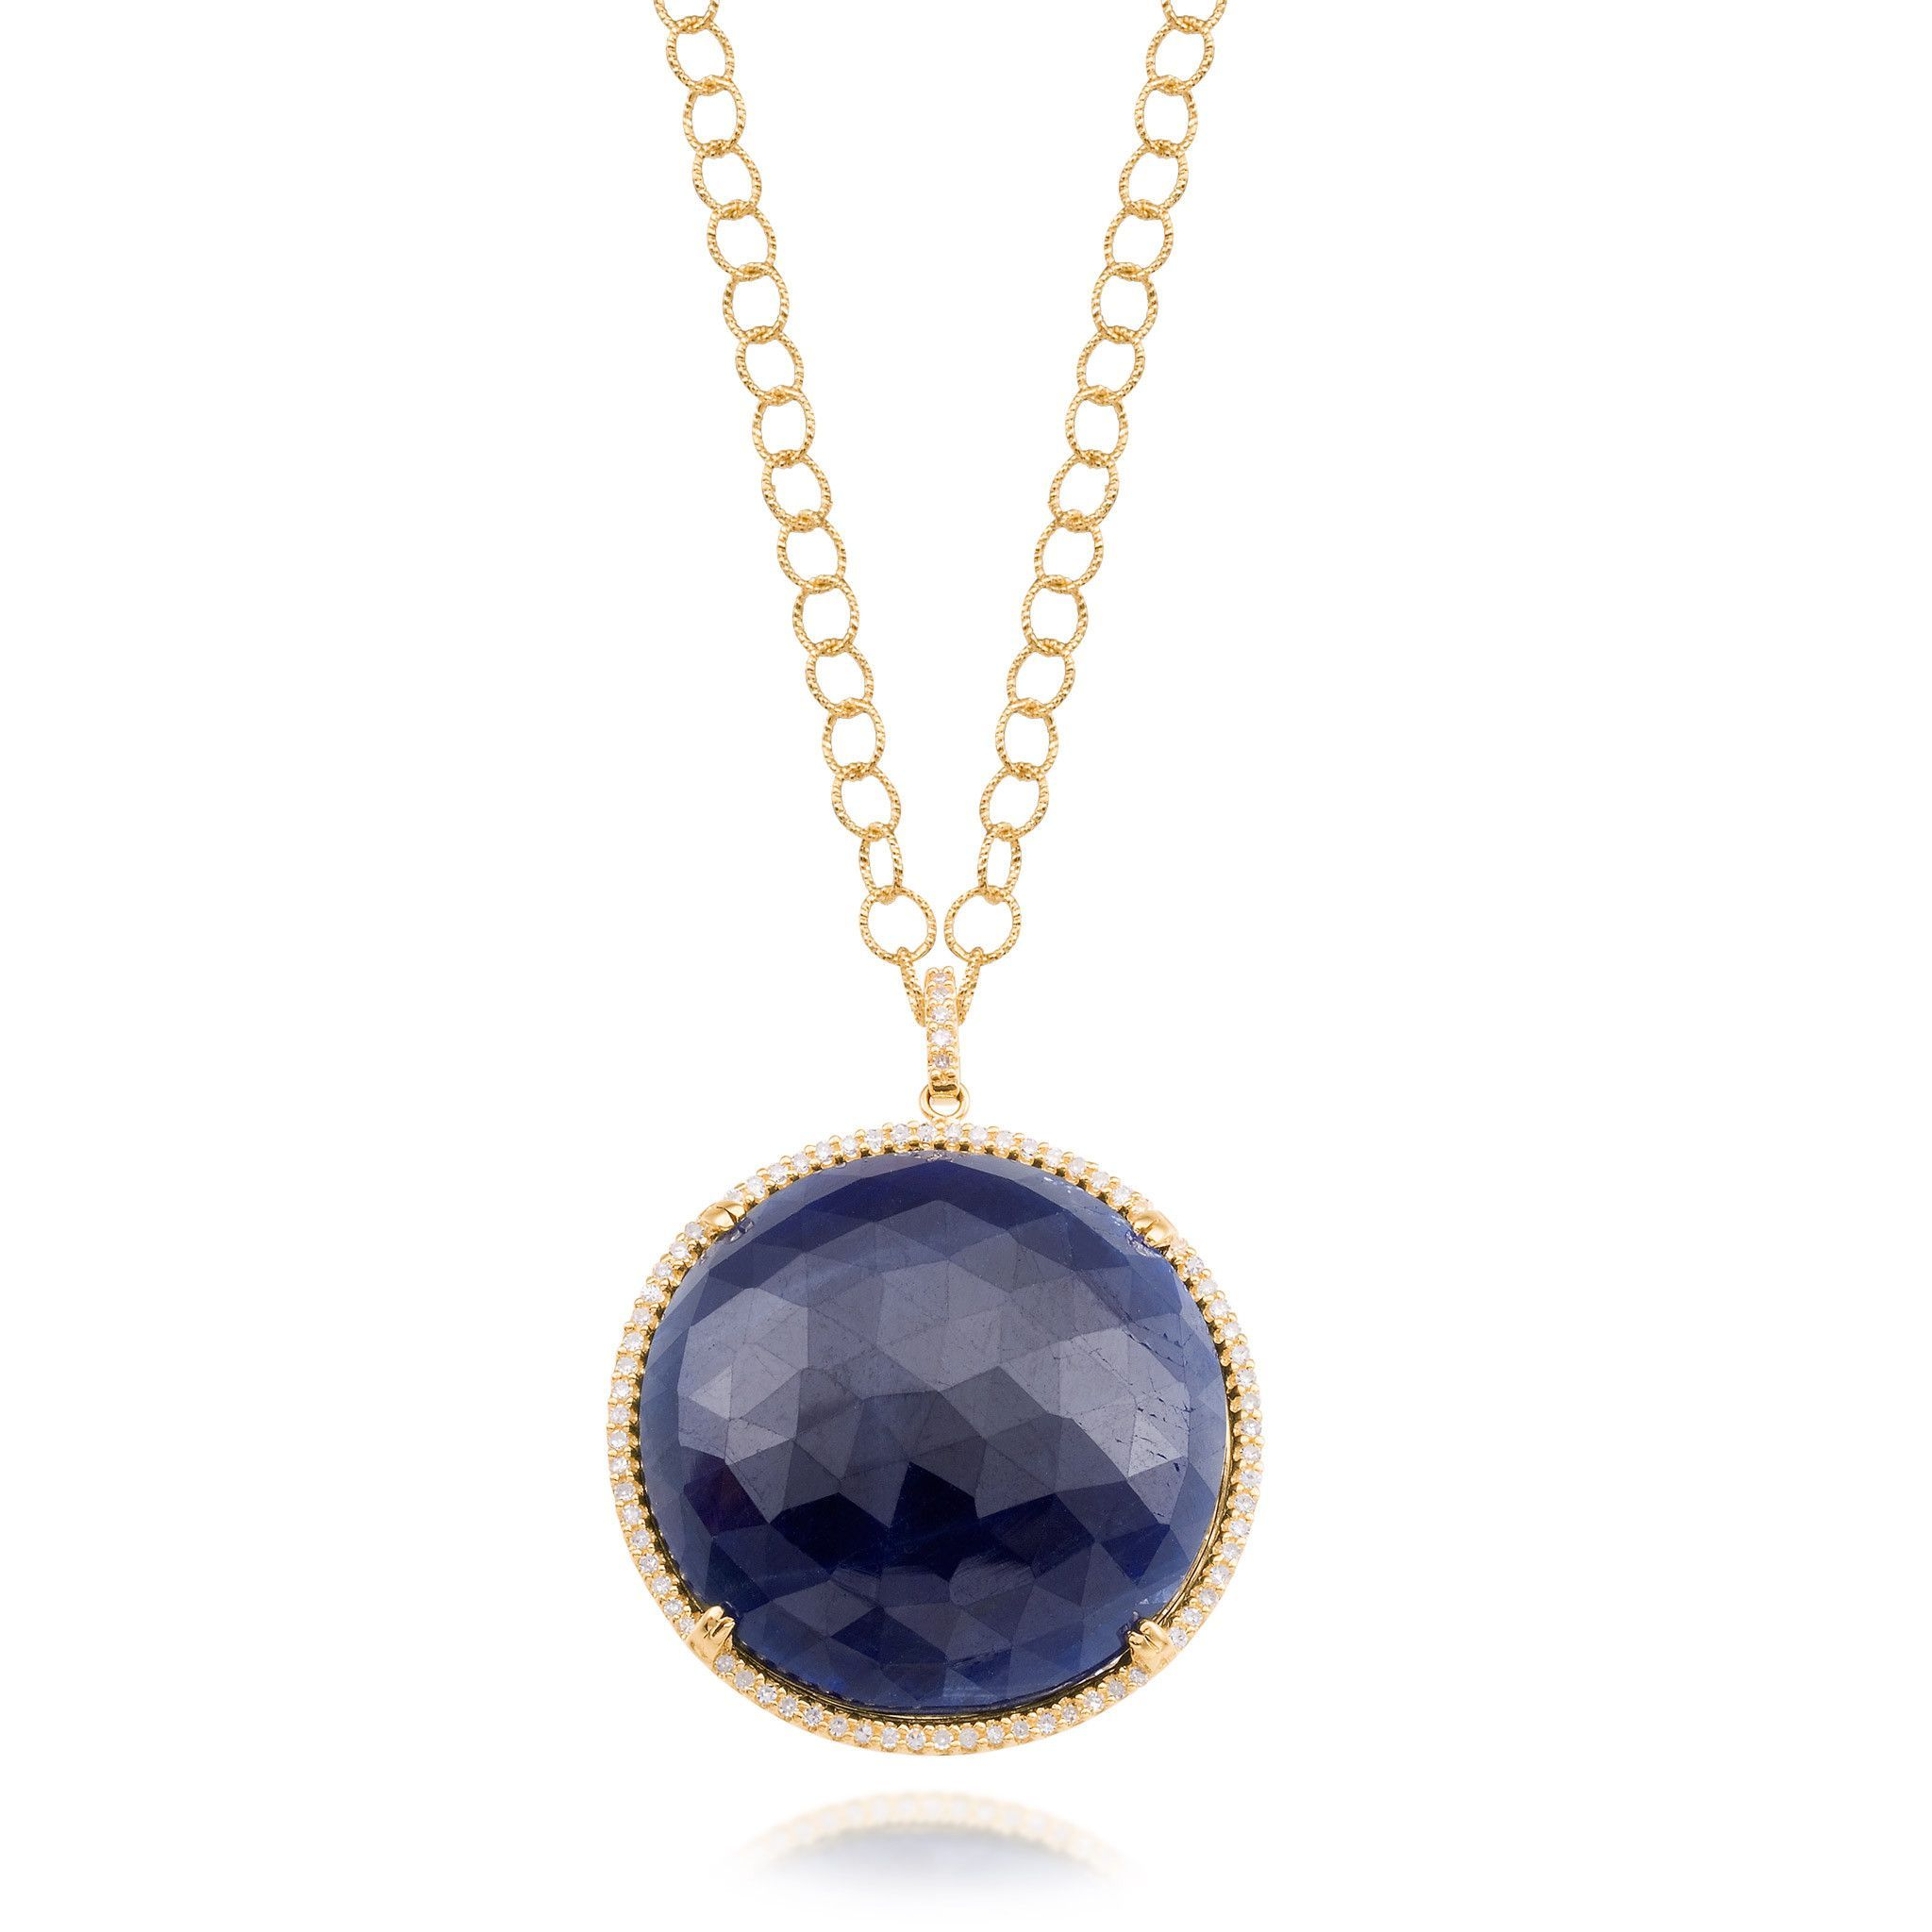 Round Sapphire Pendant Necklace with Diamonds in Yellow Gold